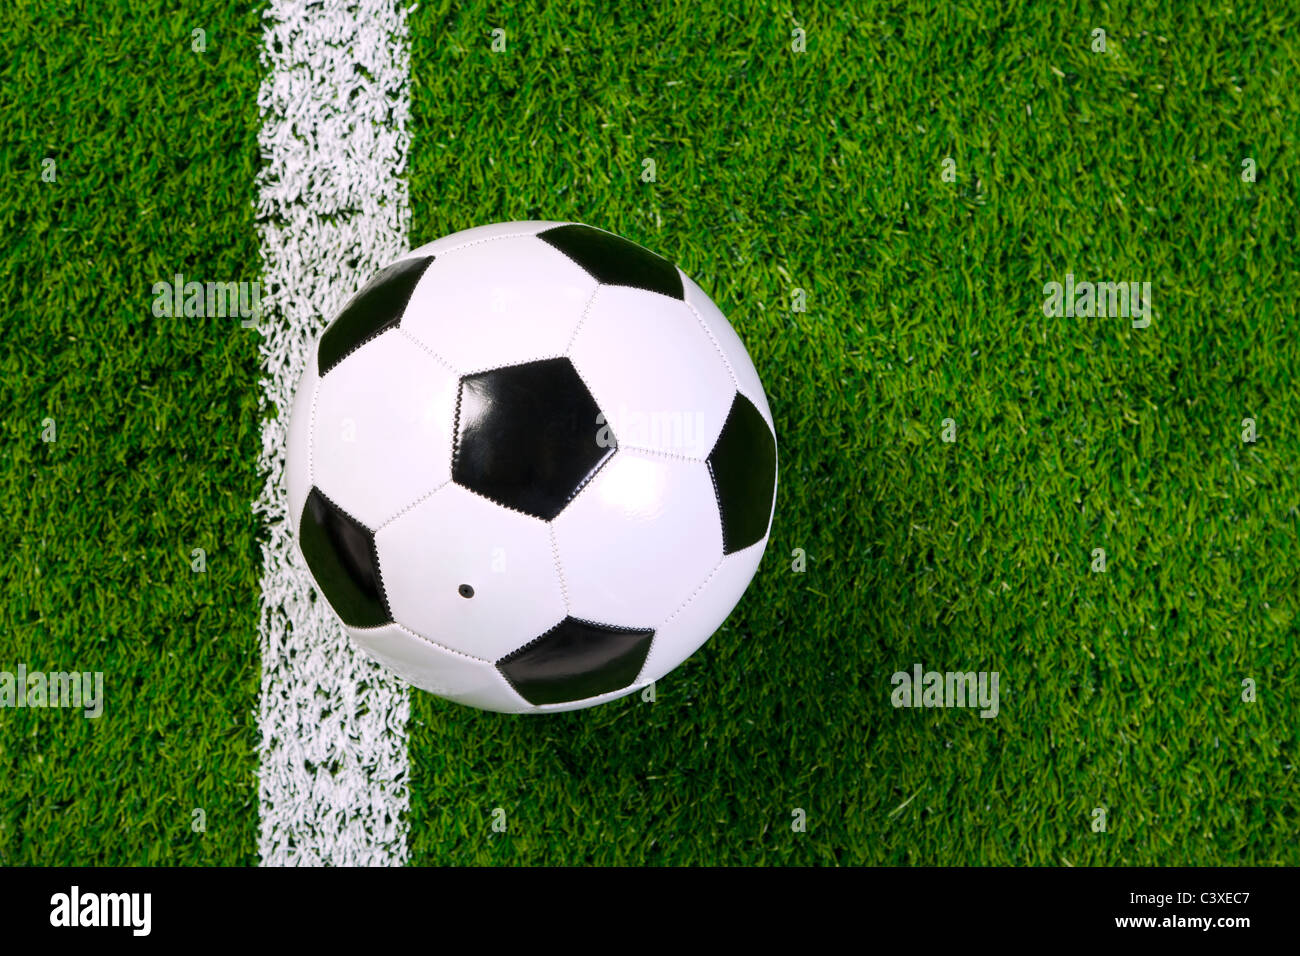 Photo of a leather football or soccer ball on a grass next to the white line, shot from above. - Stock Image